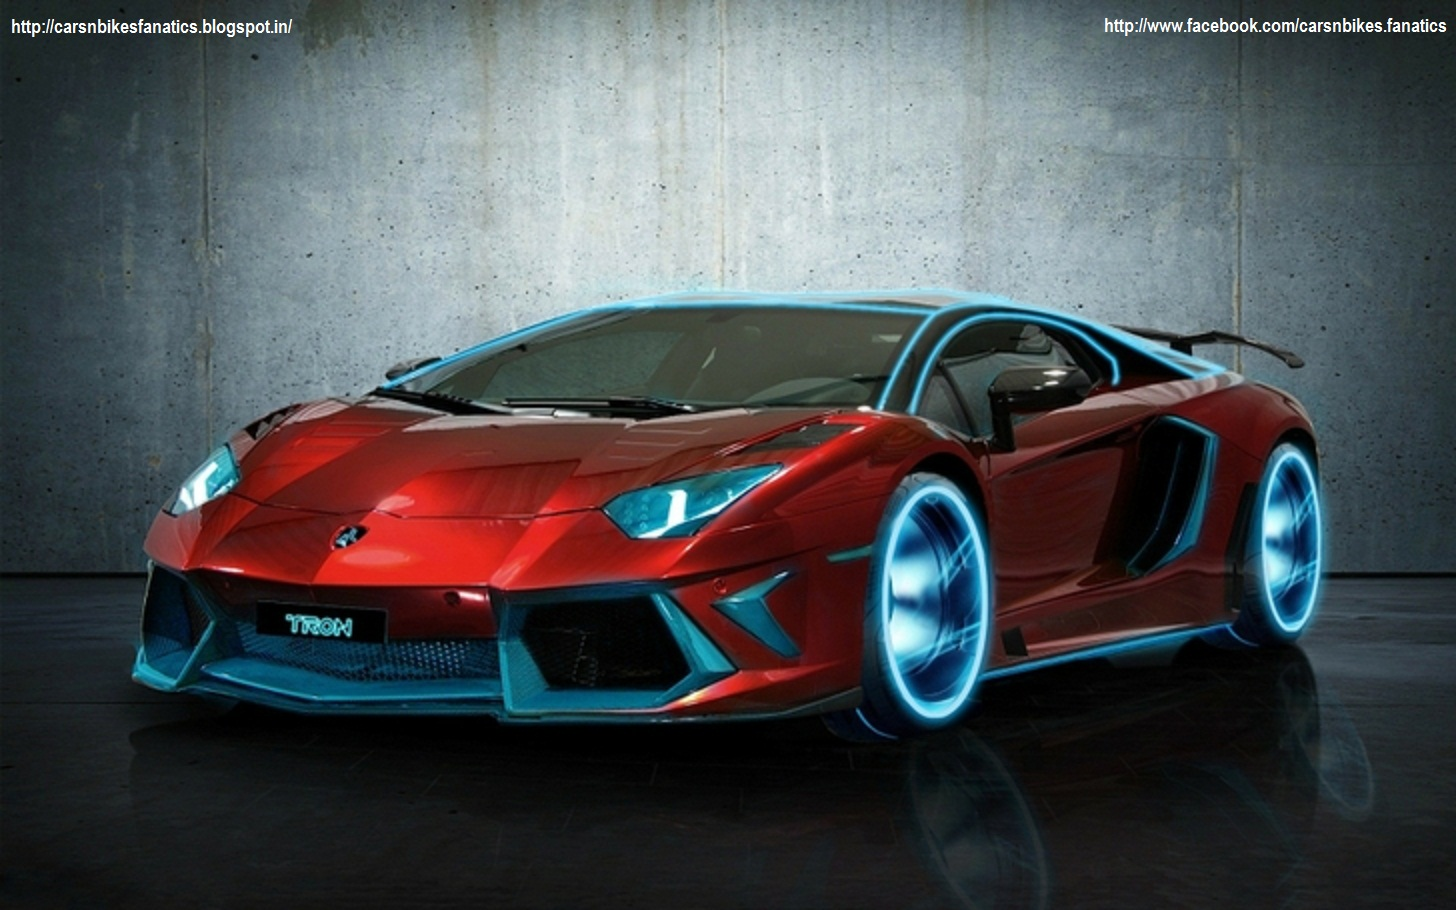 tron lamborghini aventador wallpapers - TRON Lamborghini Aventador Wallpapers HD Wallpapers